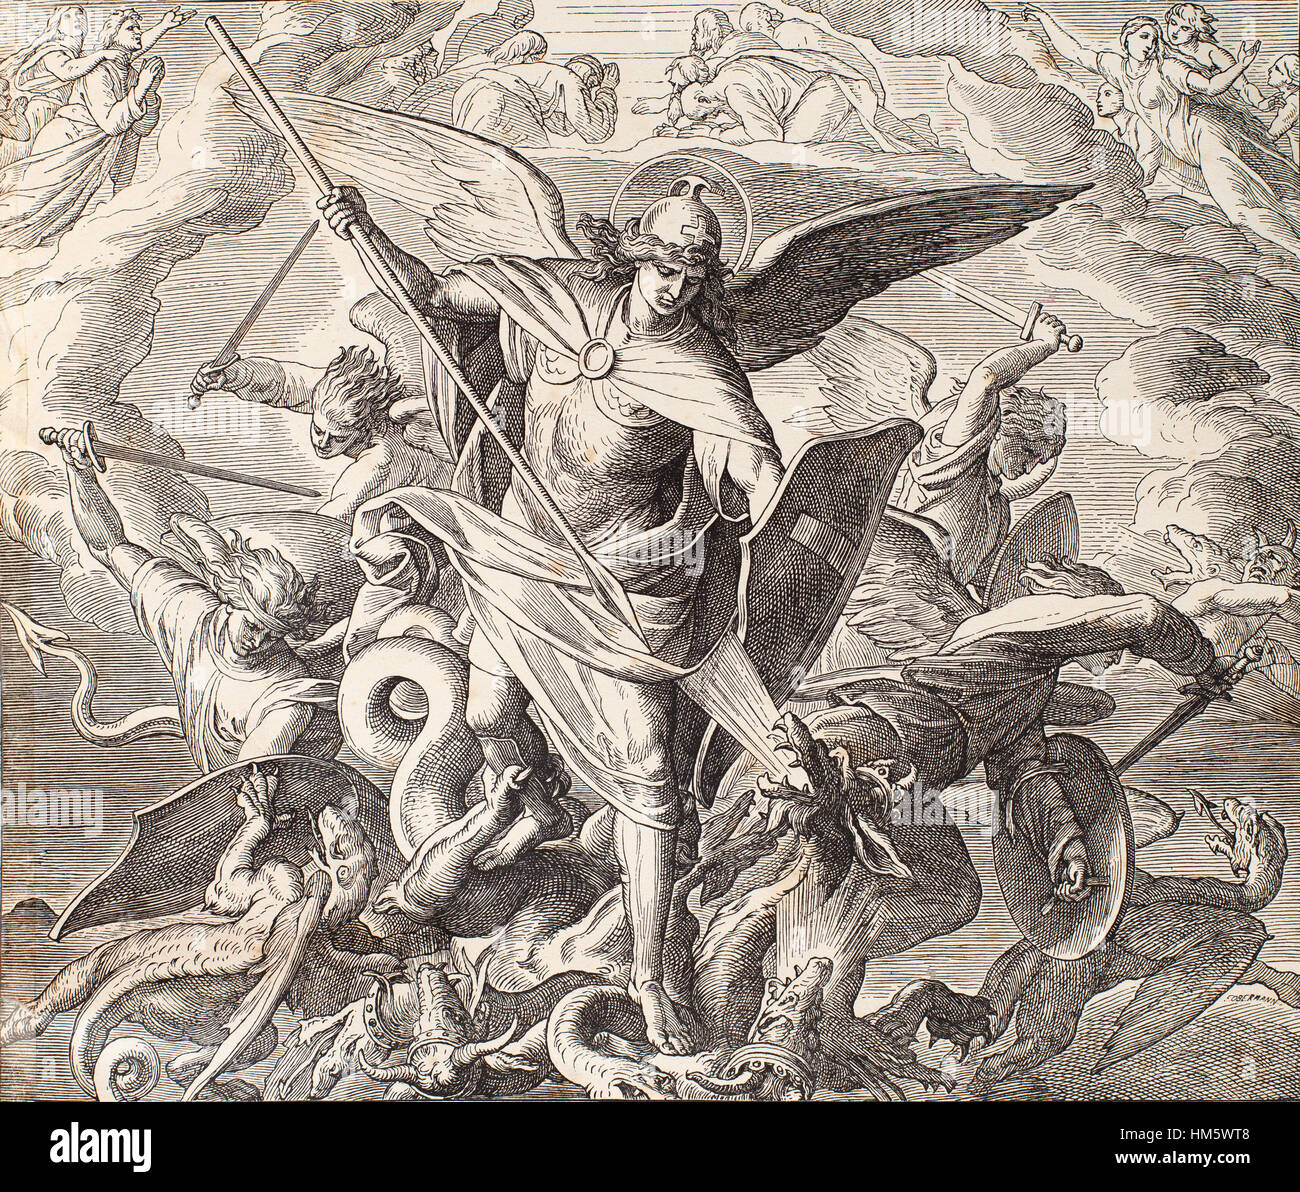 Archangel Michael fighting with dragon, engraving of Nazareene School, published in The Holy Bible, St.Vojtech Publishing, - Stock Image